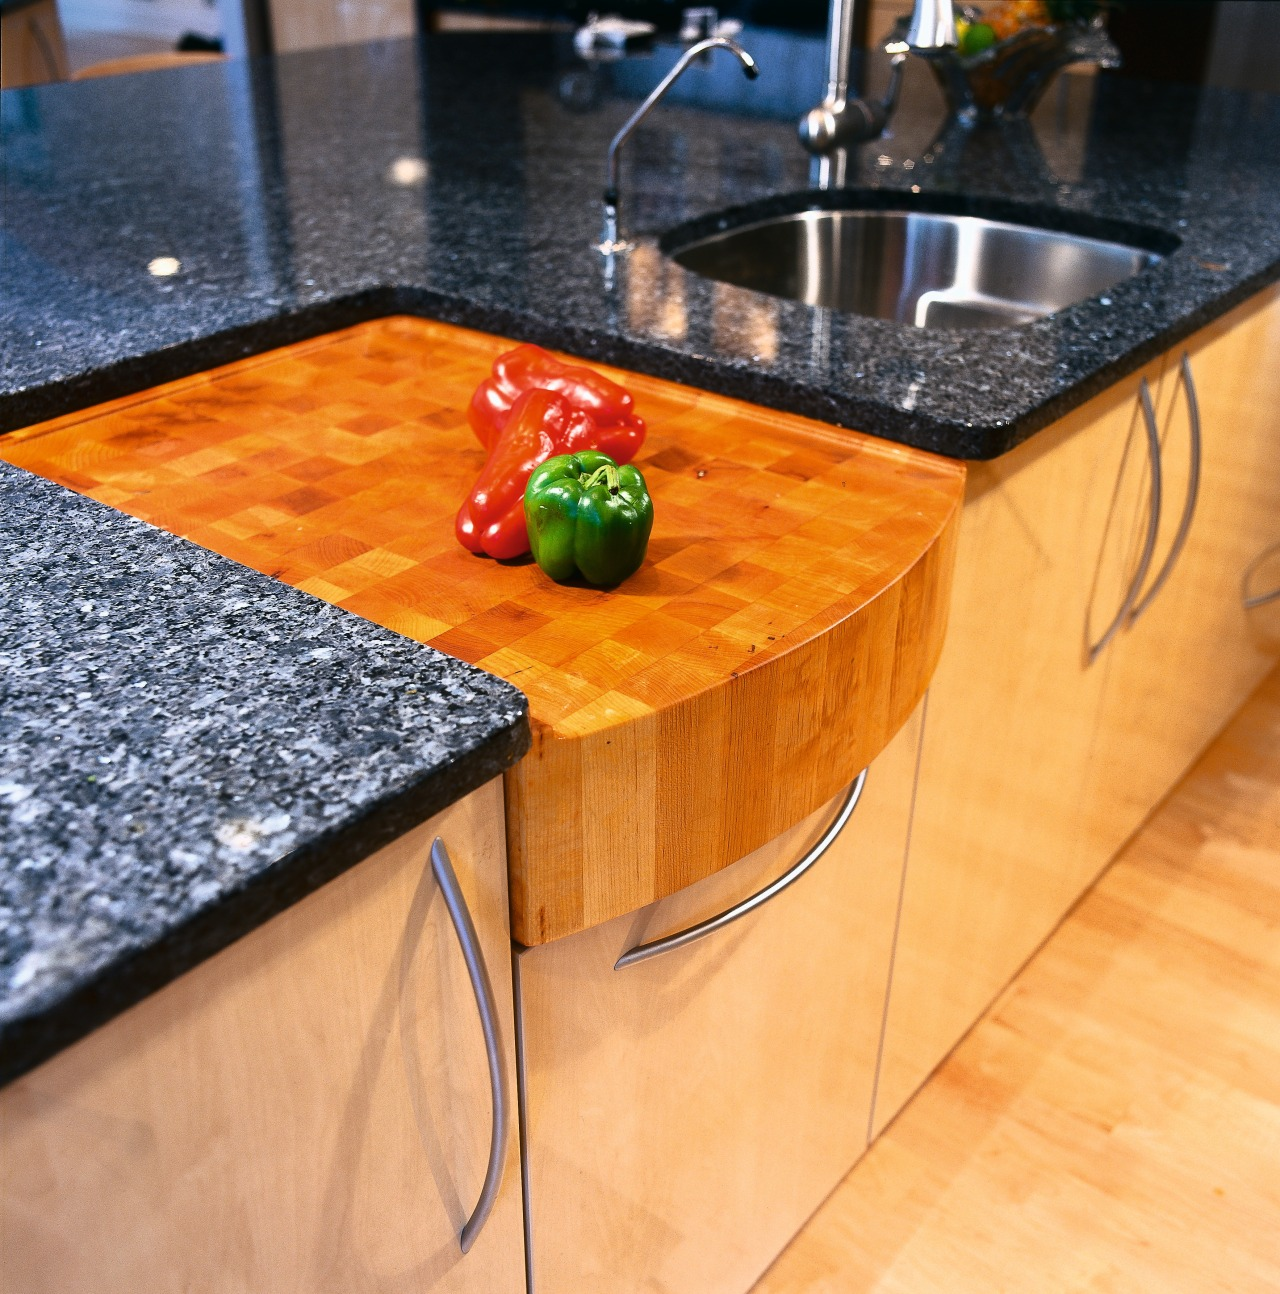 Close view of the built-in chopping board countertop, floor, flooring, furniture, hardwood, material, table, wood, wood stain, orange